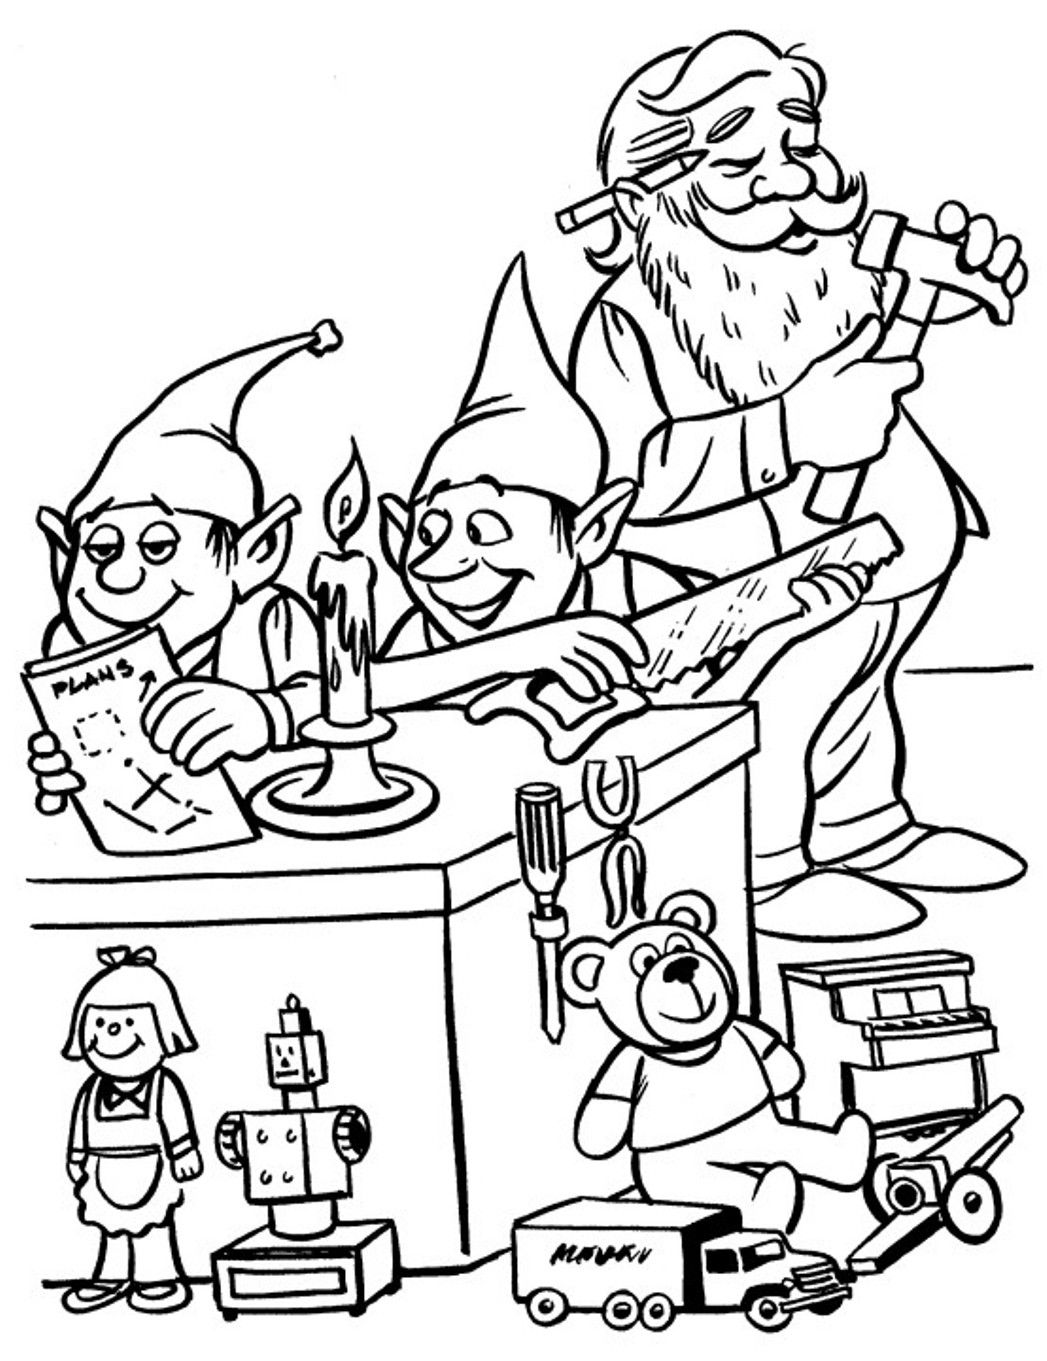 Elves And Santa Christmas Coloring Pages For Kids | Christmas ...